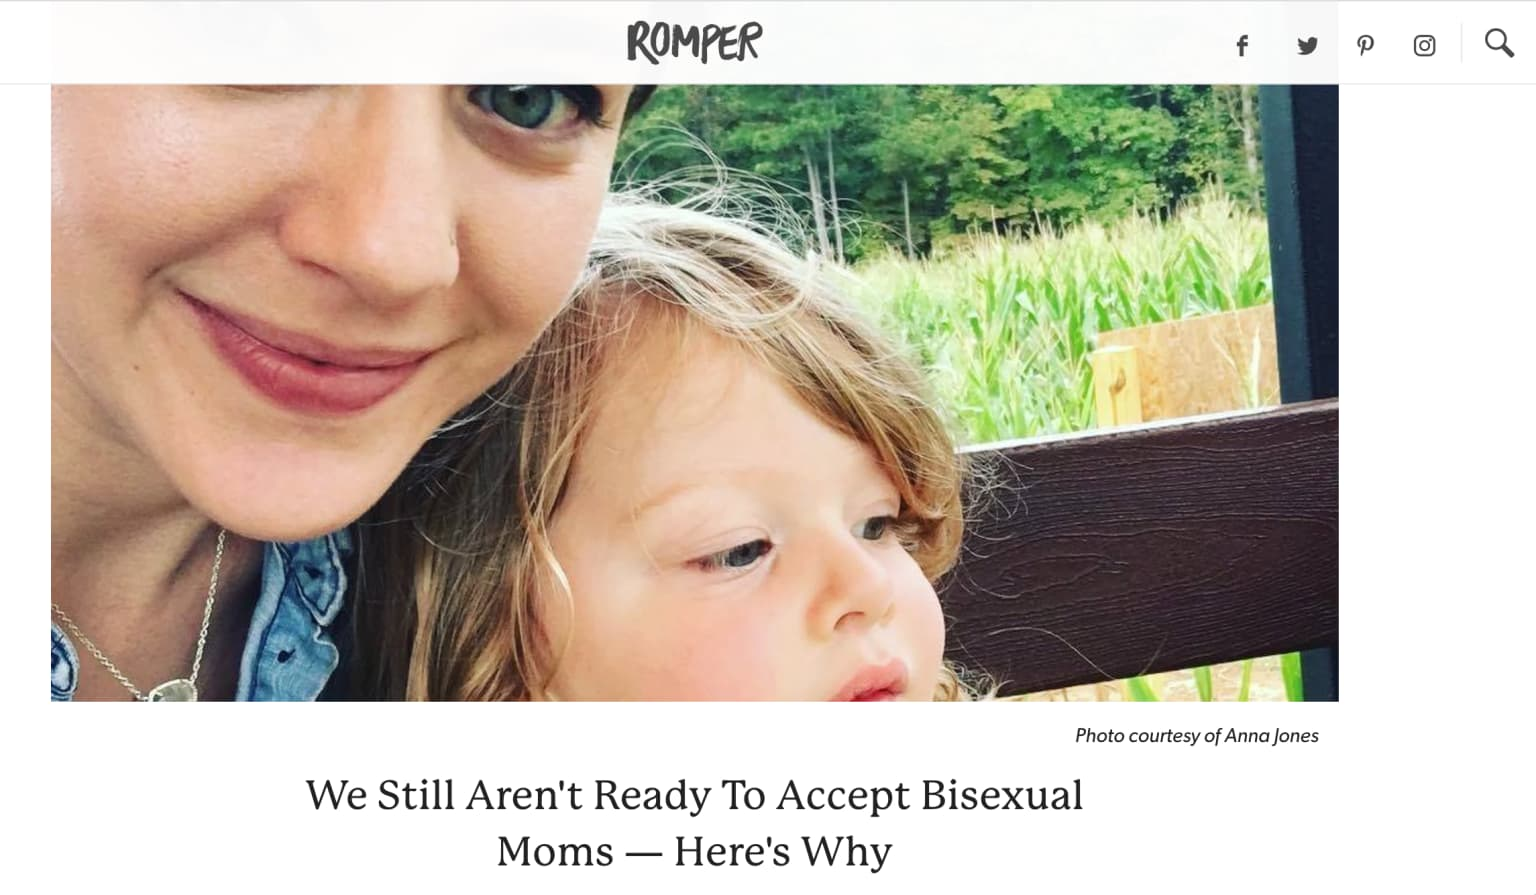 Bisexual mom article for Romper, a division of Bustle